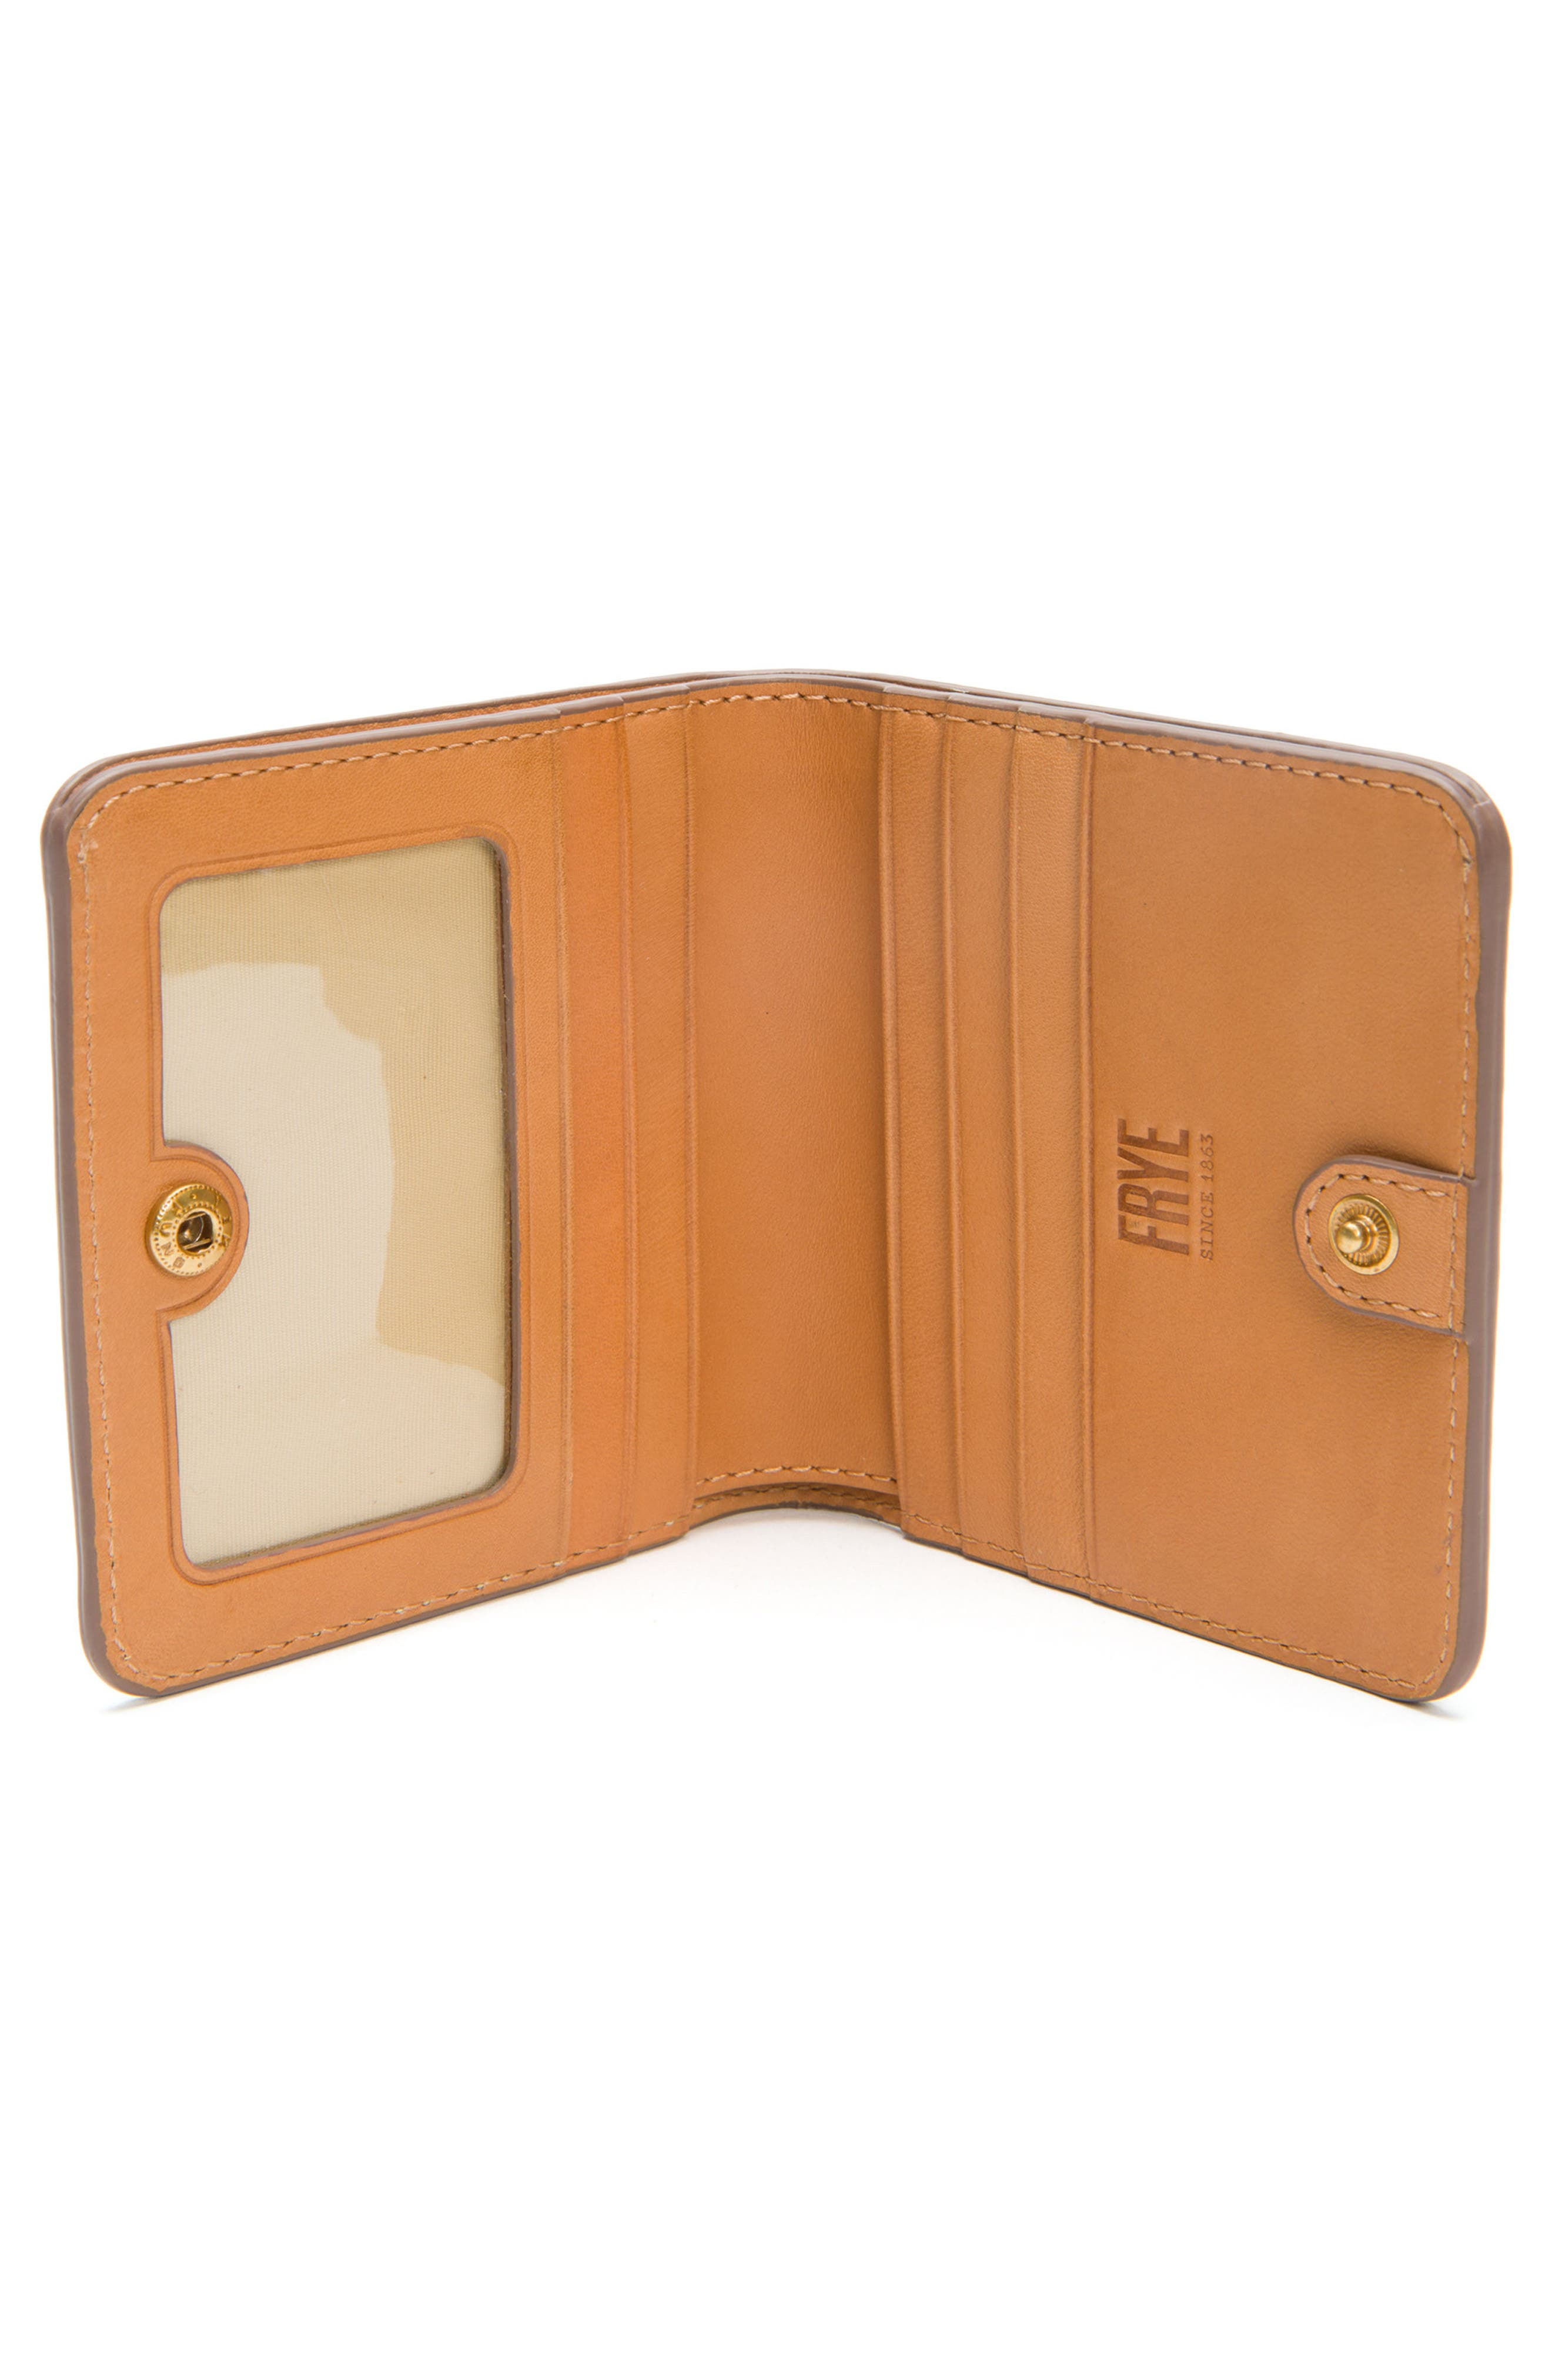 Carson Small Leather Wallet,                             Alternate thumbnail 2, color,                             Sunrise